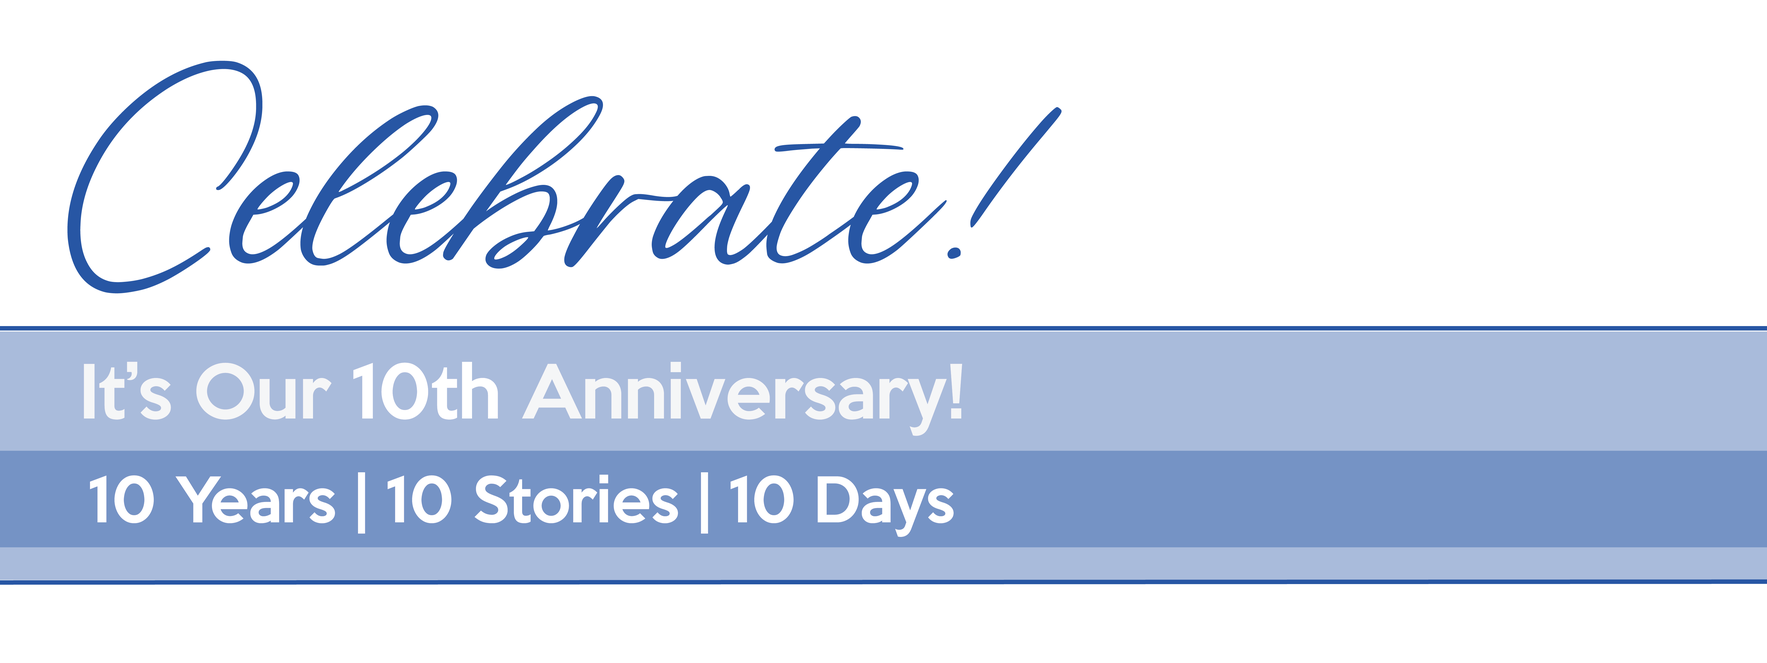 Celebrate FACTS 10 Year Anniversary! image